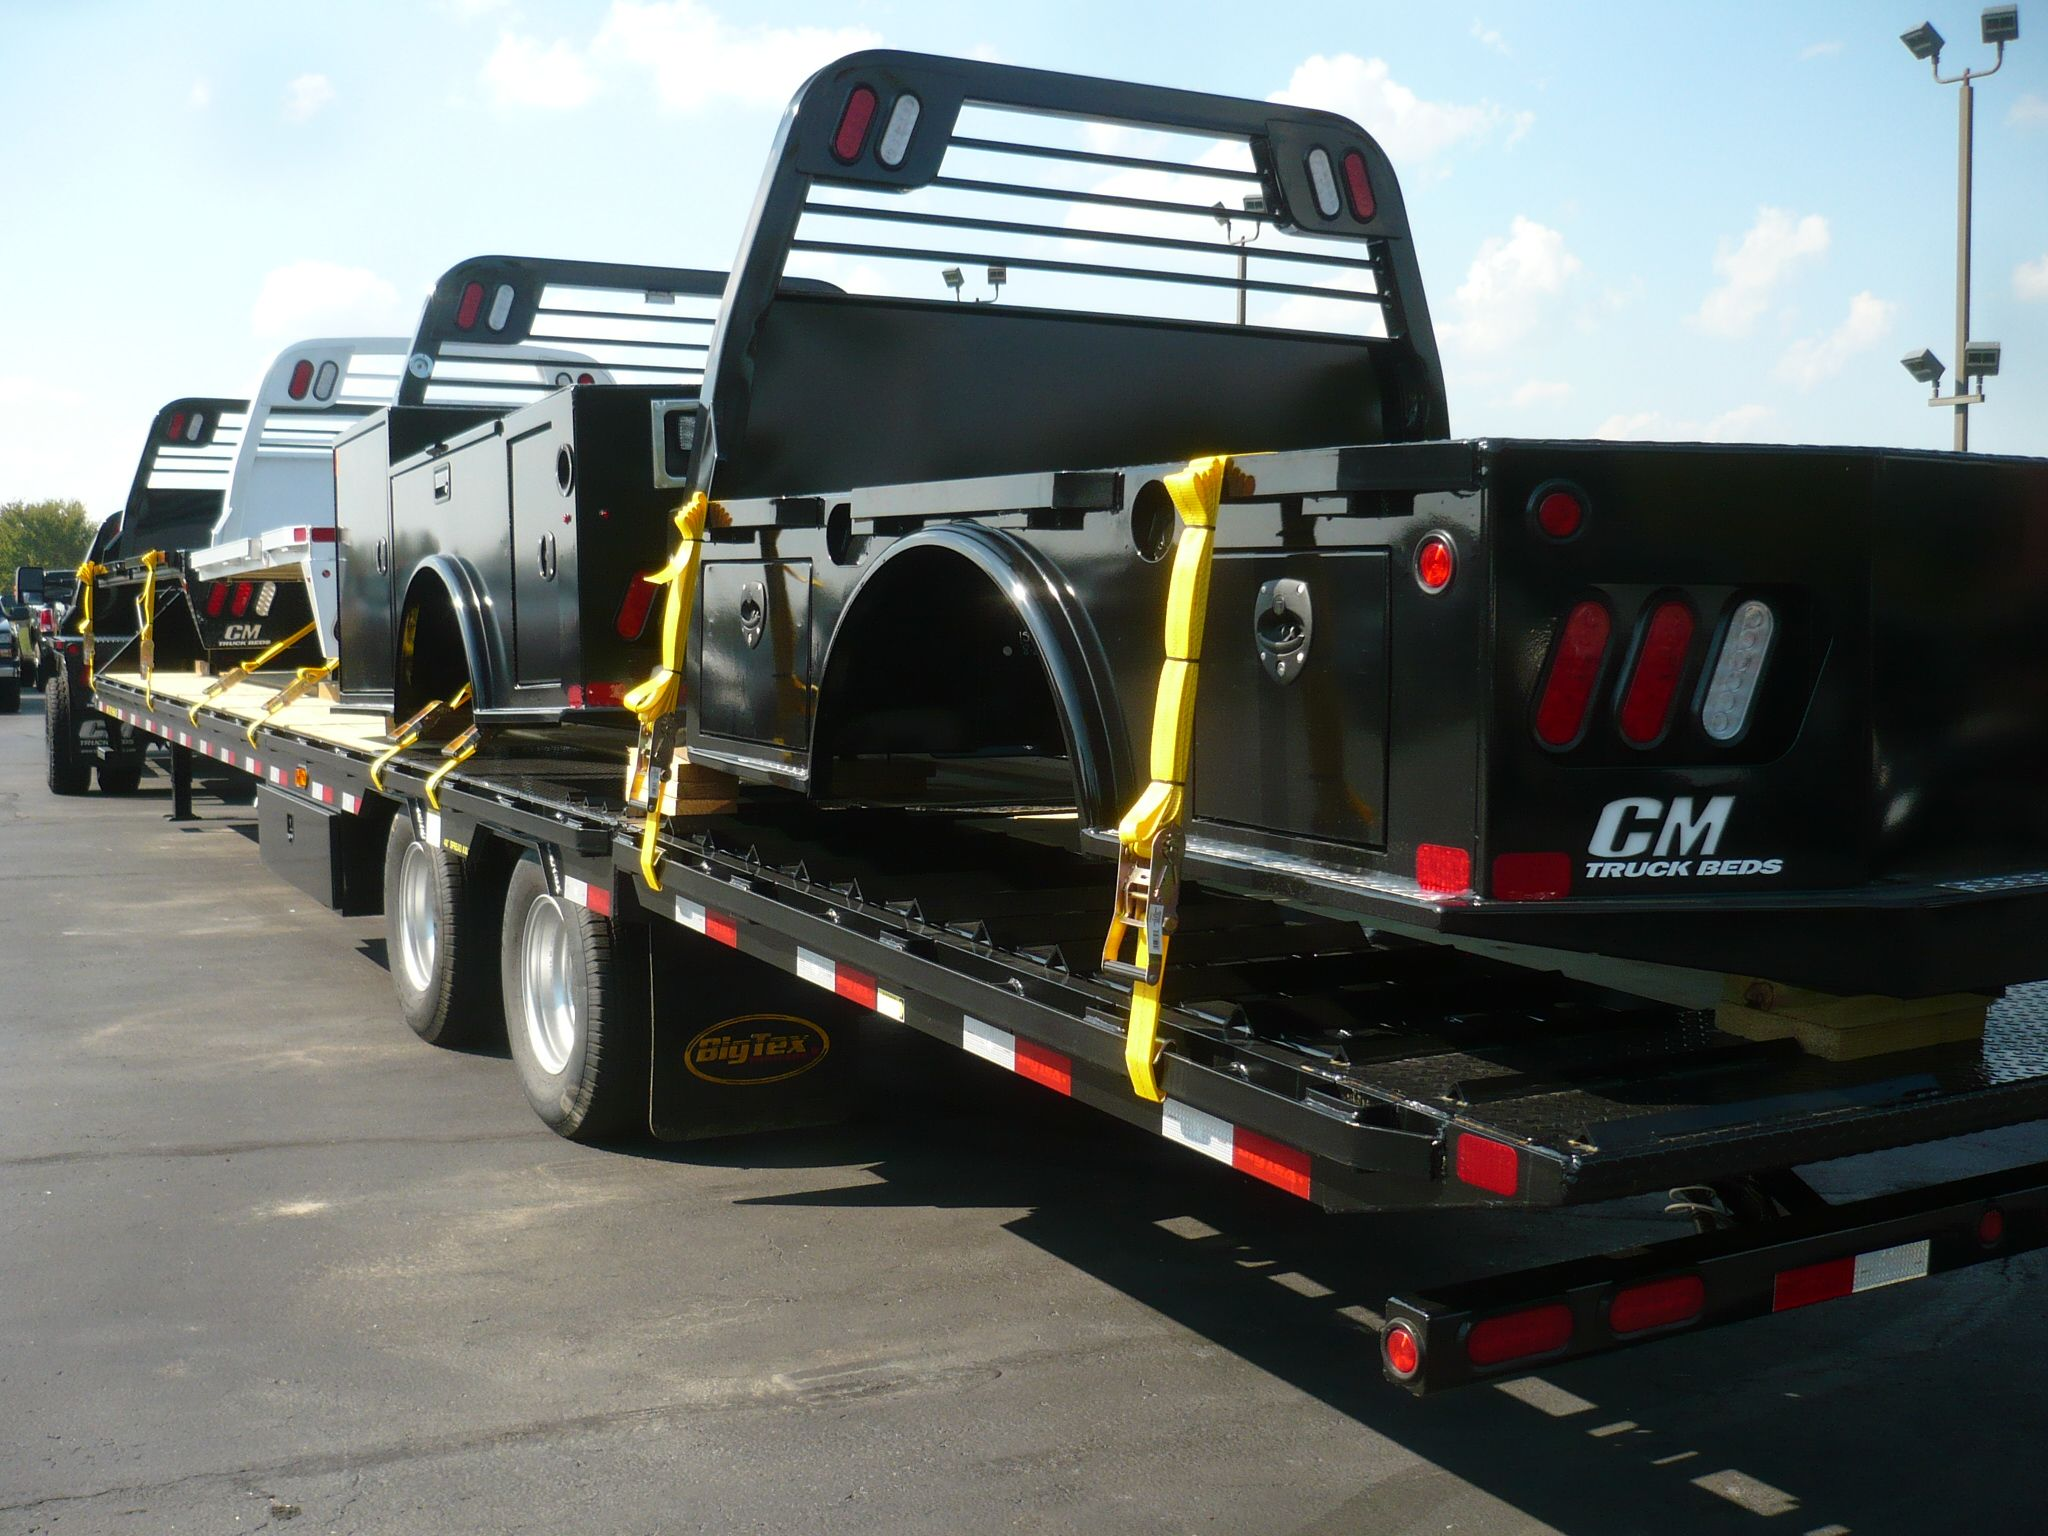 Midwest Motors Mobile display of CM truck beds Truck bed